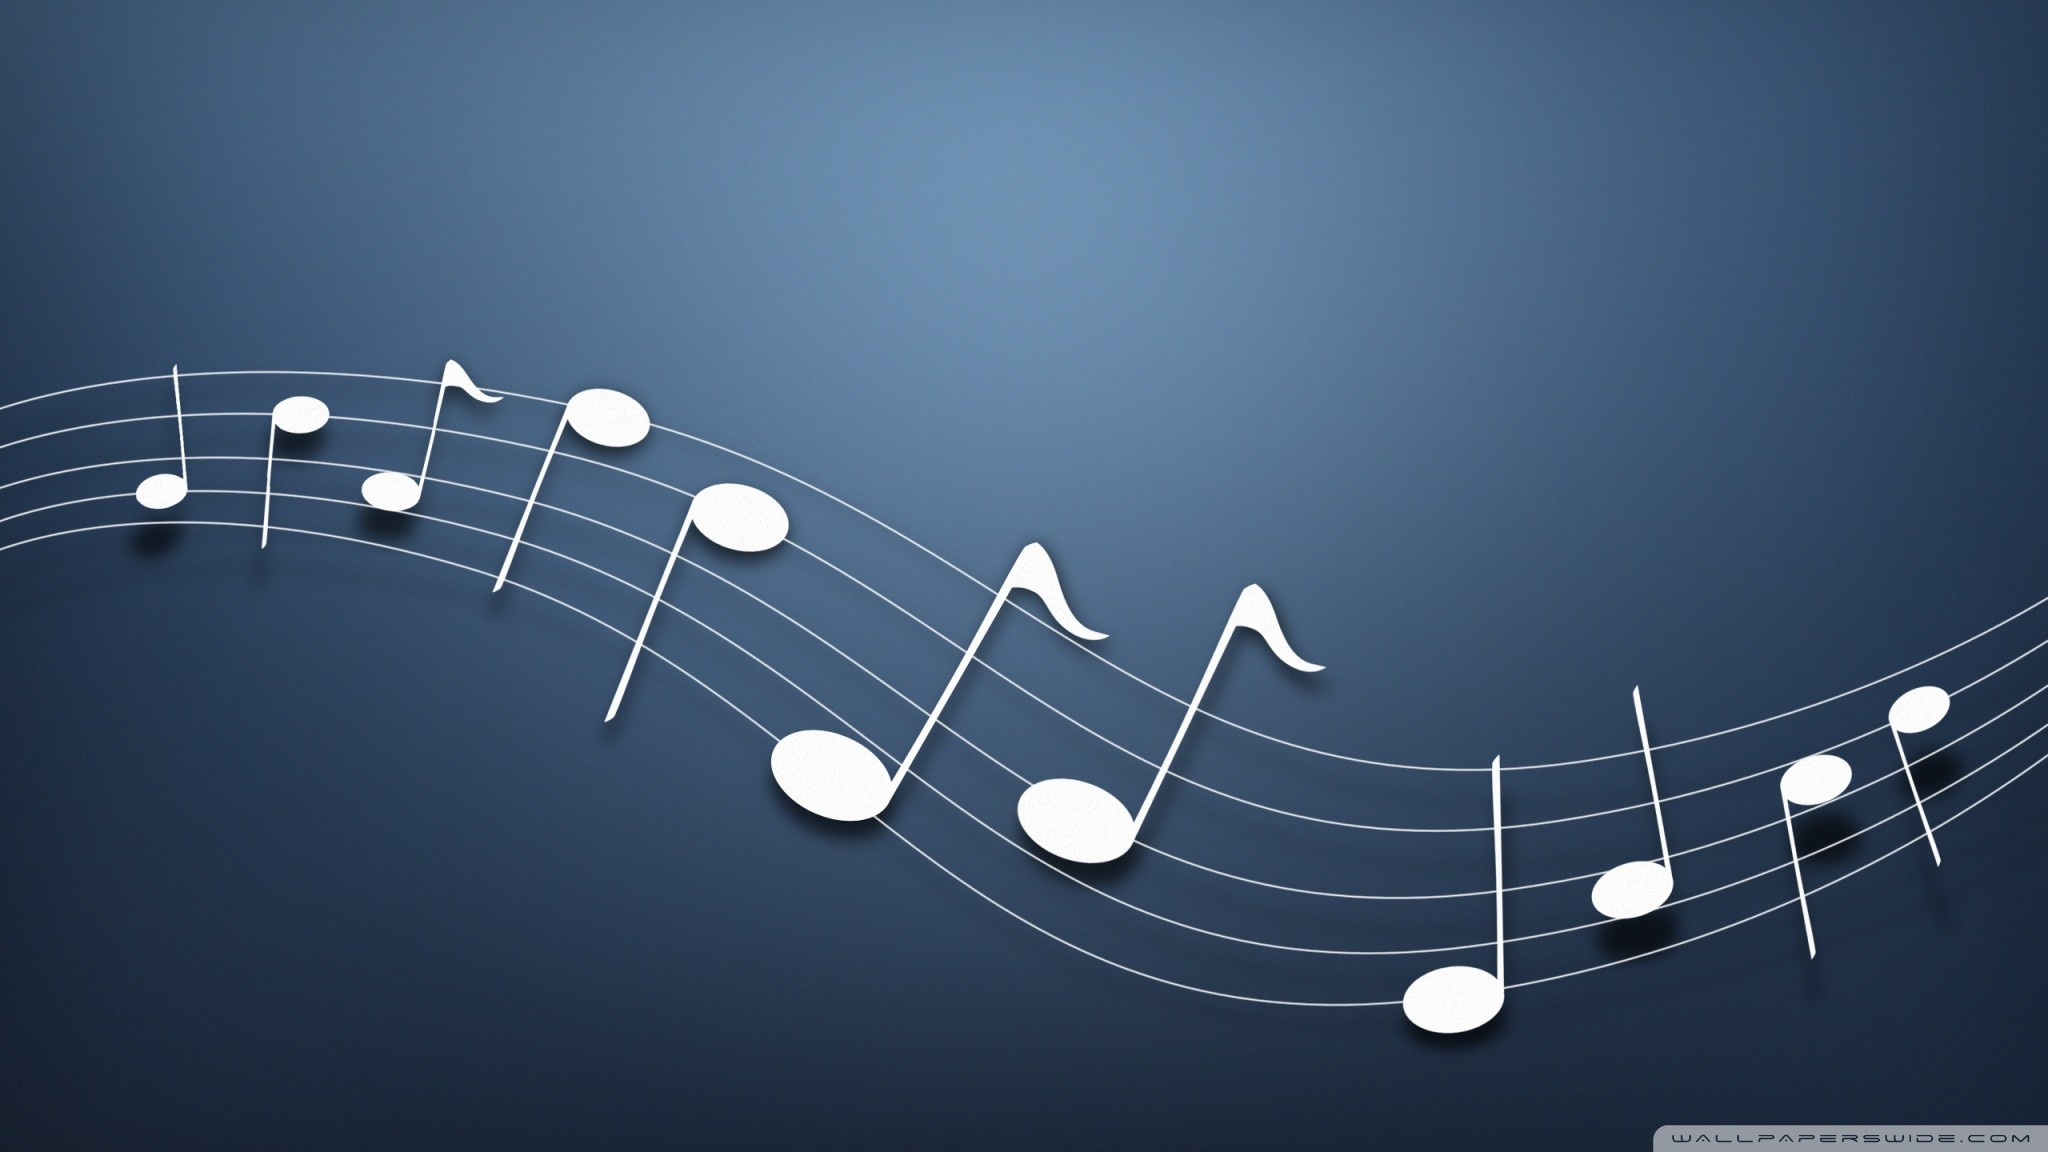 Cool Music Note Wallpapers: Music Wallpaper Backgrounds (66+ Images